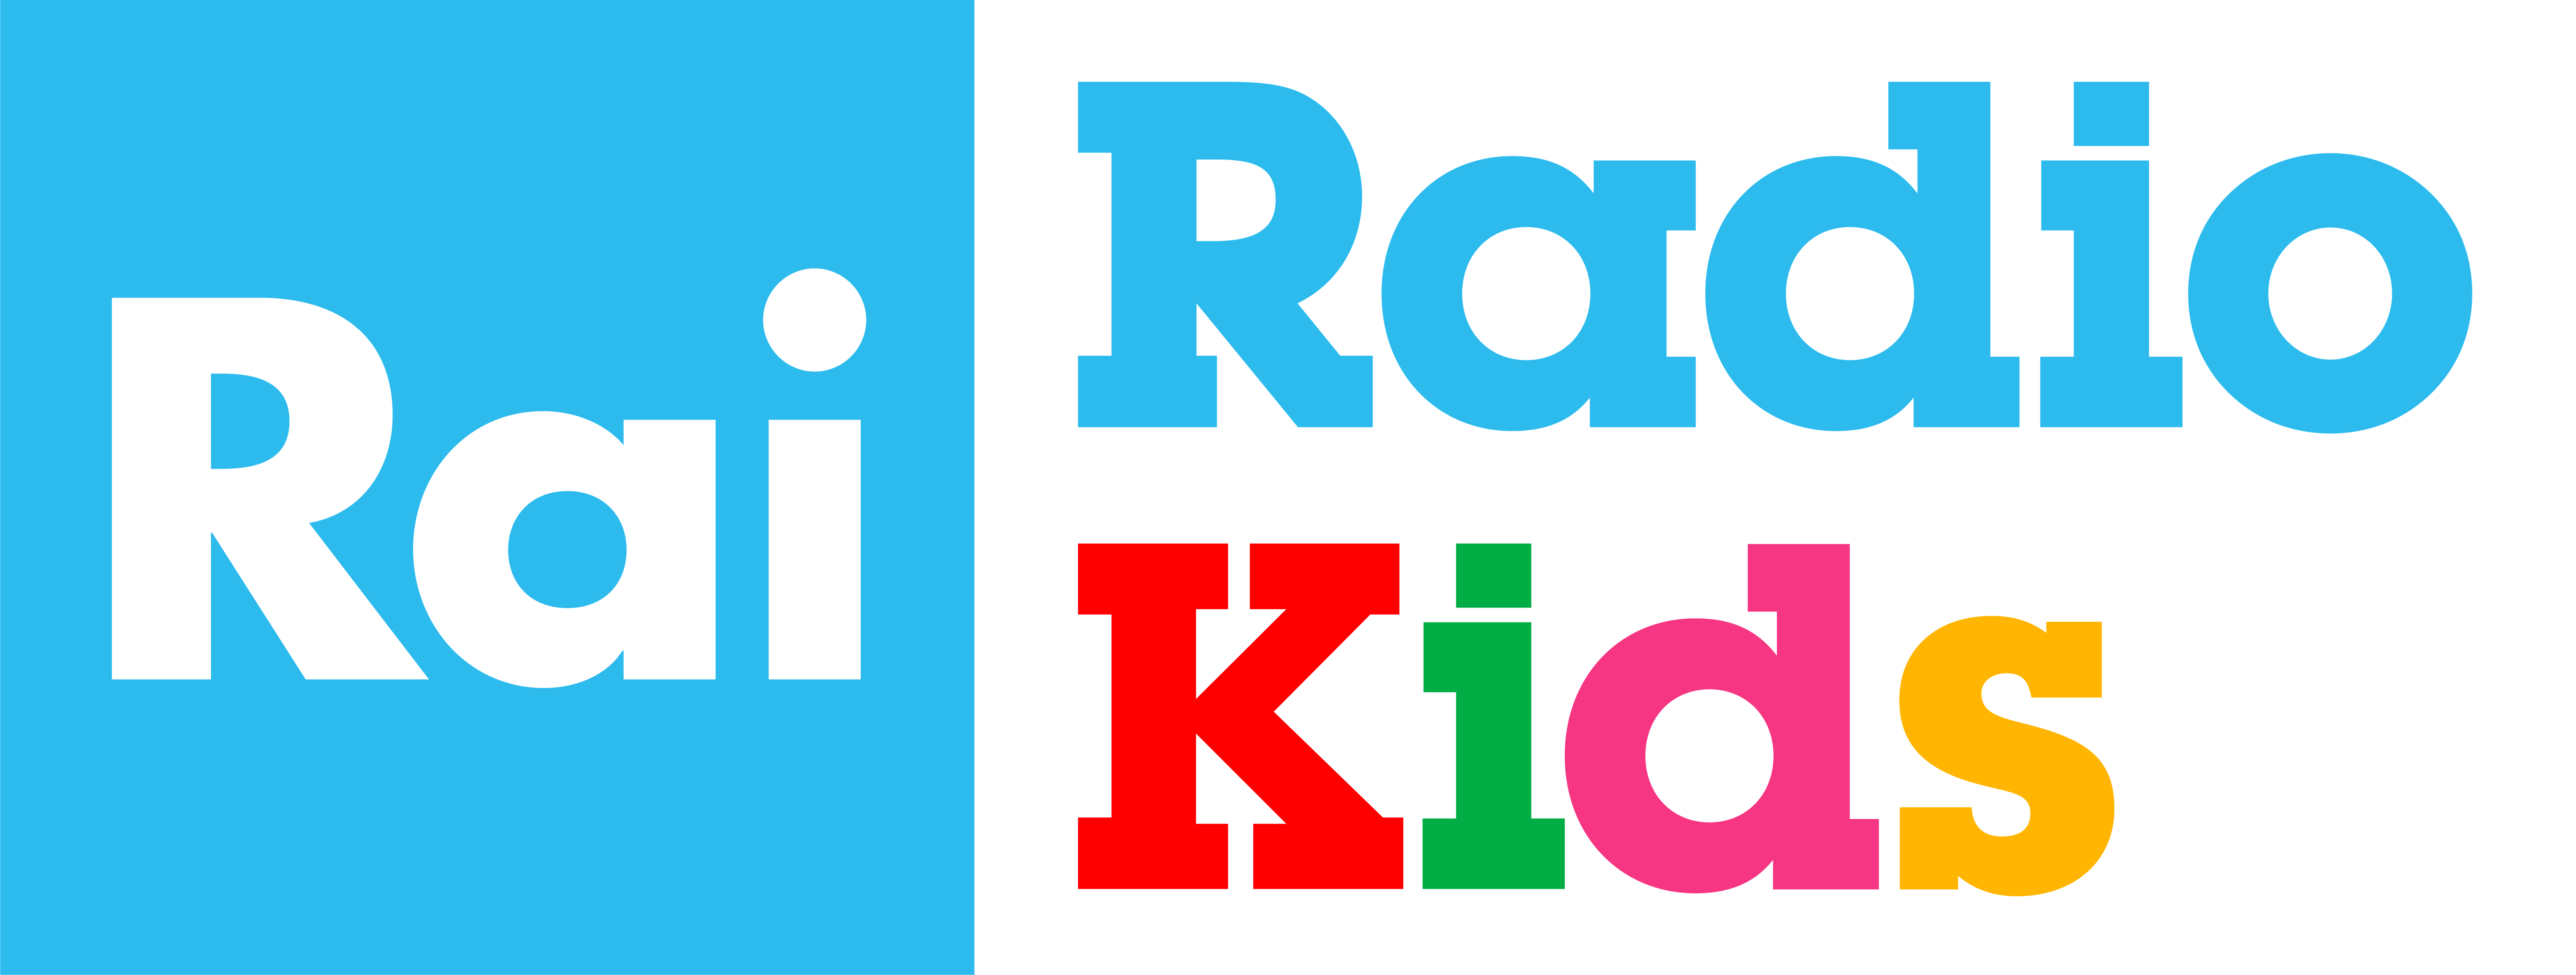 Rai Radio Kids_Logo Color-RGB